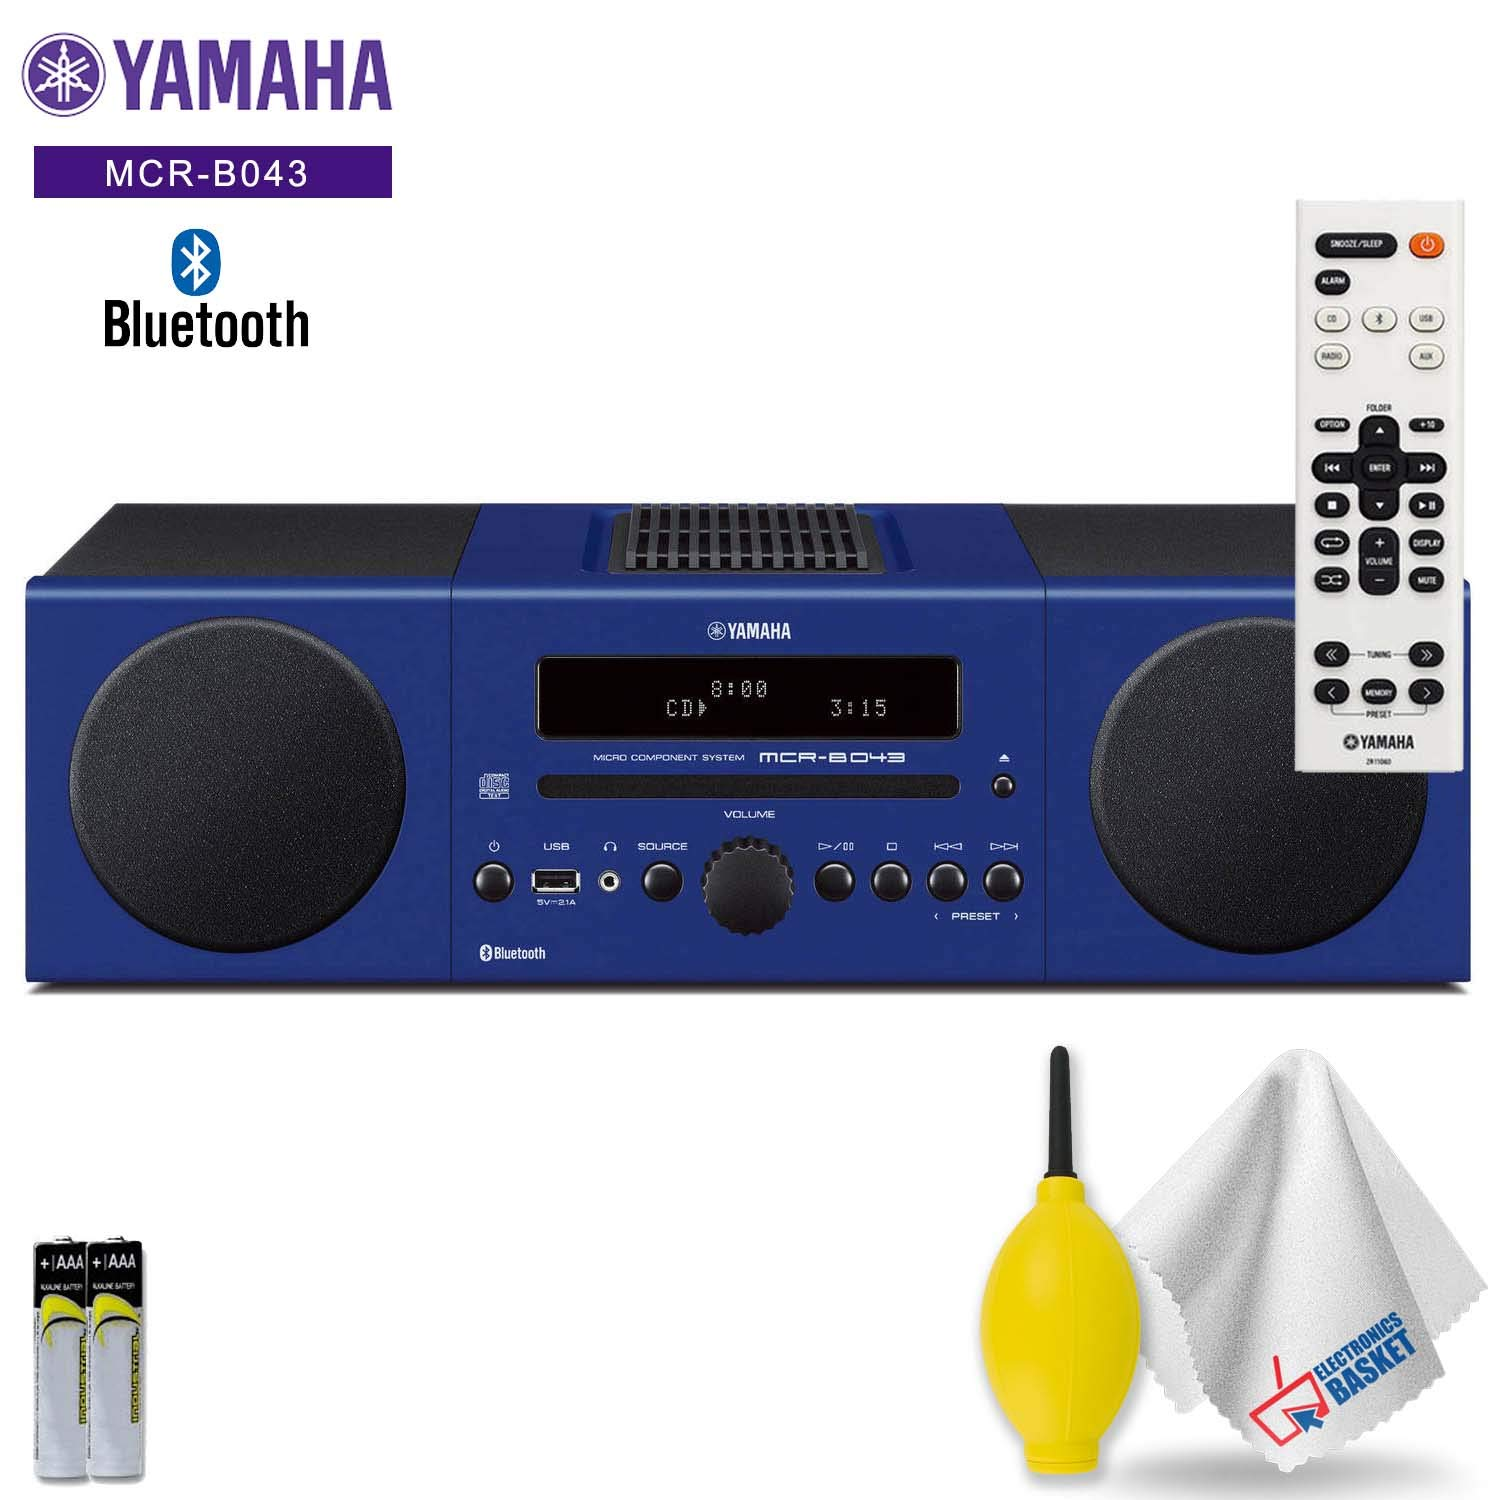 Yamaha MCR-B043 30W Bluetooth Wireless Music System (Racing Blue) Accessory Kit - Includes - Cleaning Kit by Electronics Basket